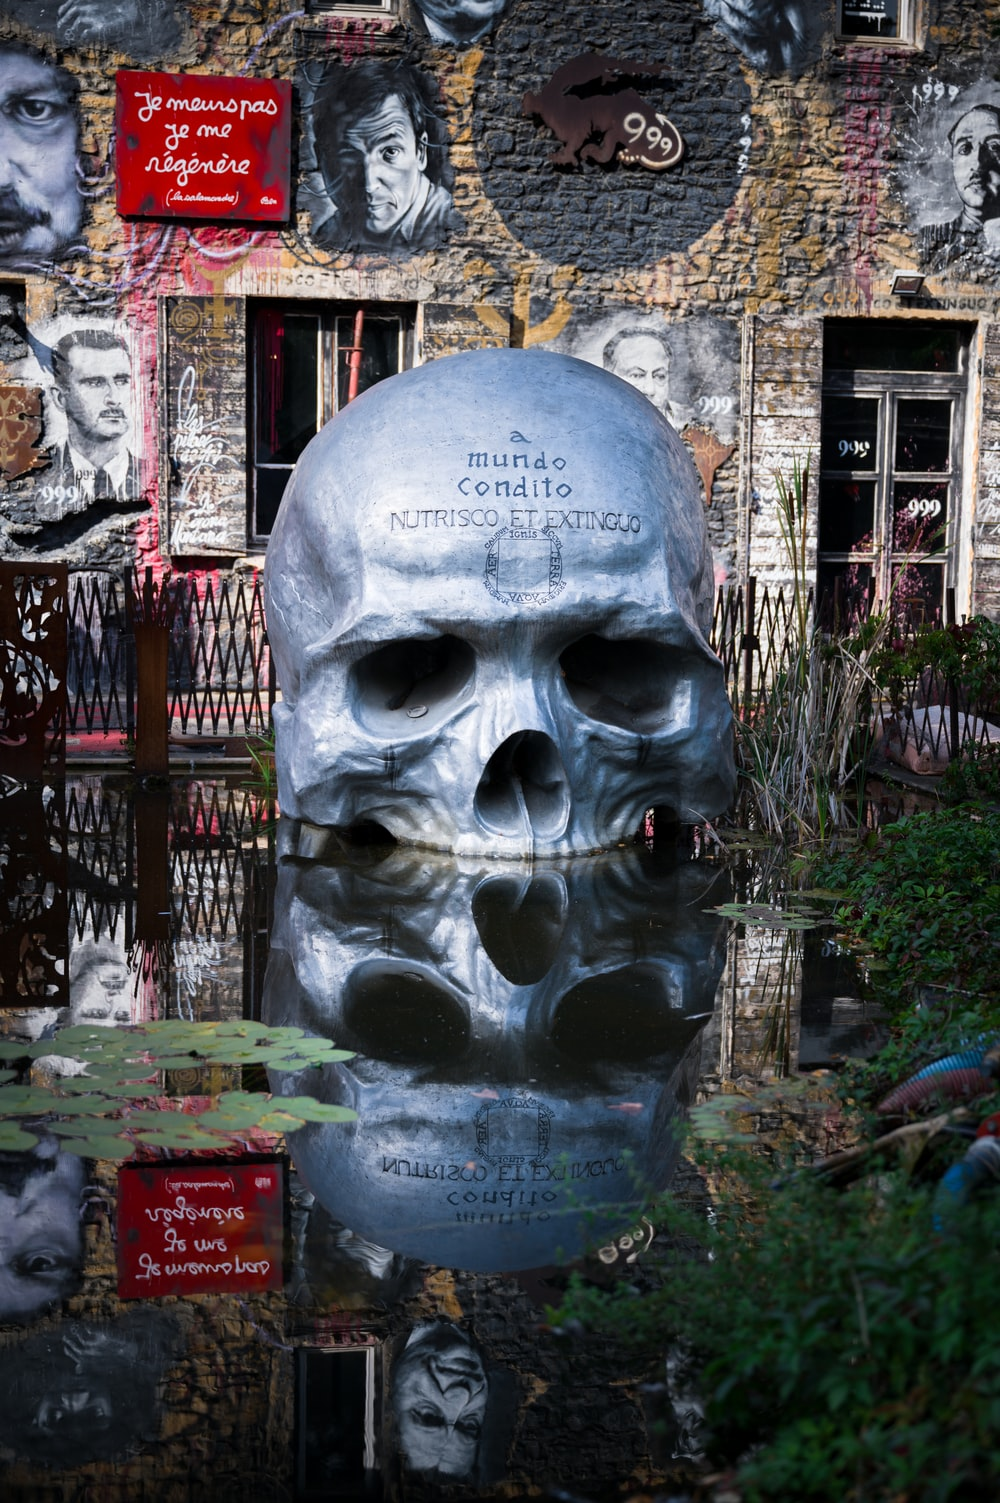 human skull statue reflection on body of water